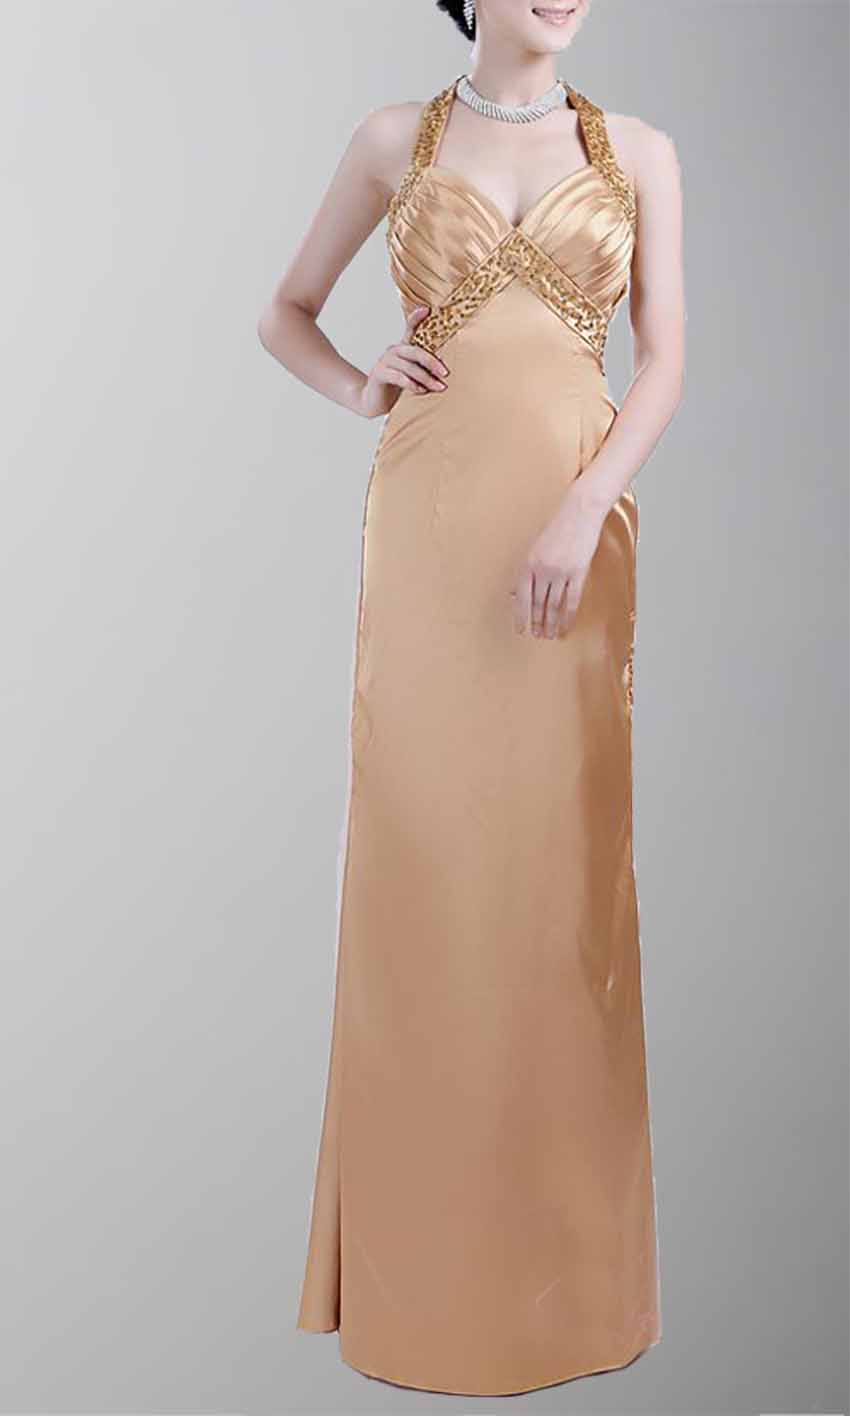 Gold Sequined Halter Evening Pageant Dresses KSP061 [KSP061] - £96.00 : Cheap Prom Dresses Uk, Bridesmaid Dresses, 2014 Prom & Evening Dresses, Look for cheap elegant prom dresses 2014, cocktail gowns, or dresses for special occasions? kissprom.co.uk offers various bridesmaid dresses, evening dress, free shipping to UK etc.